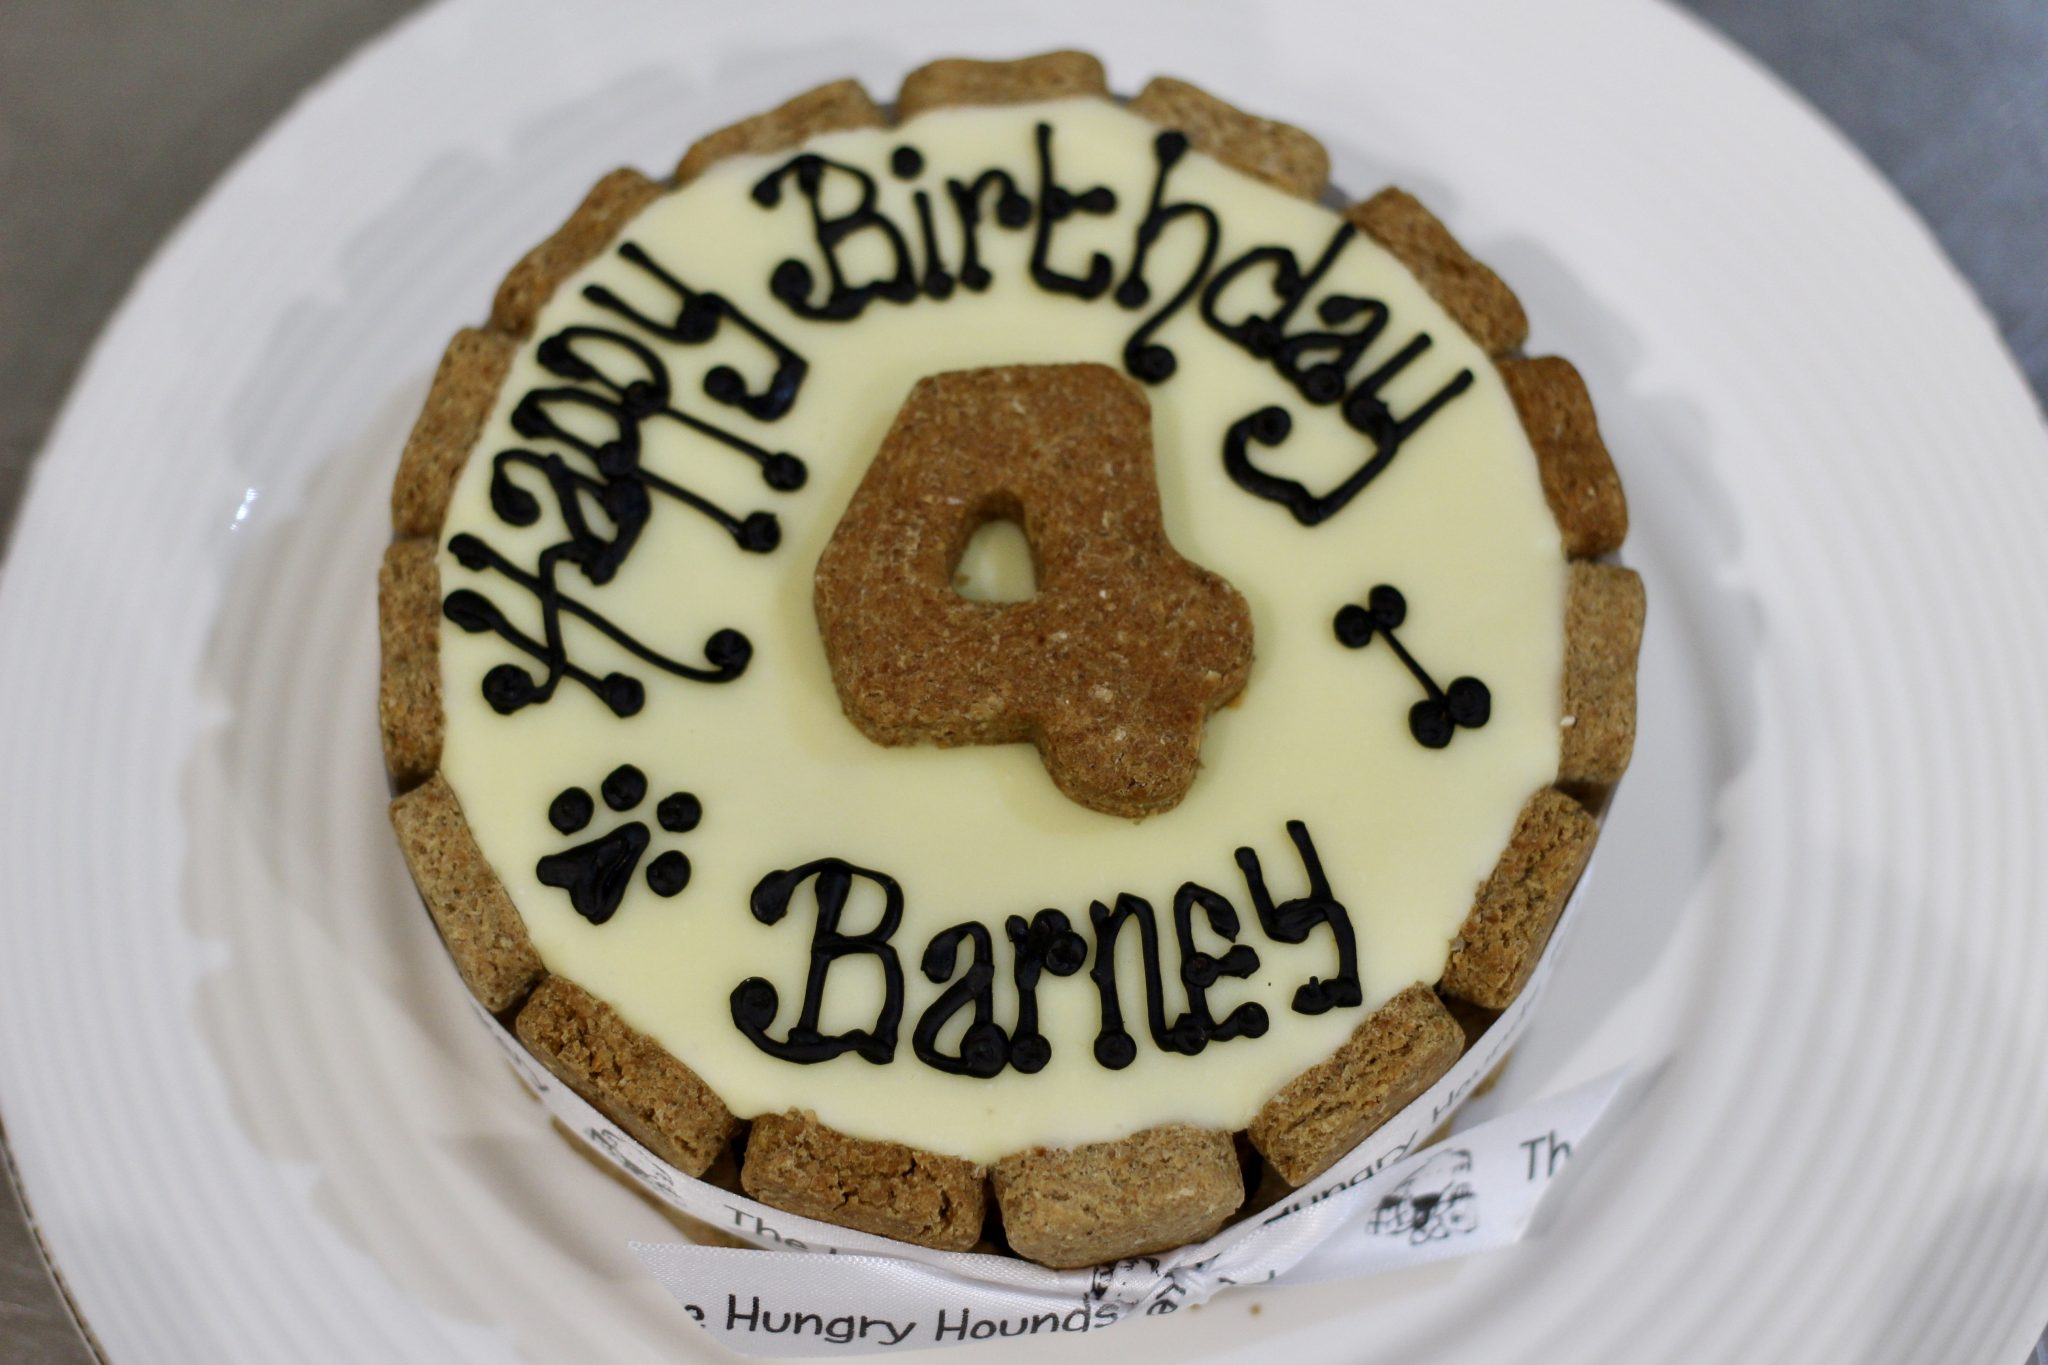 Delicious Doggy Birthday Cake By The Hungry Hounds Bakery Scruffy